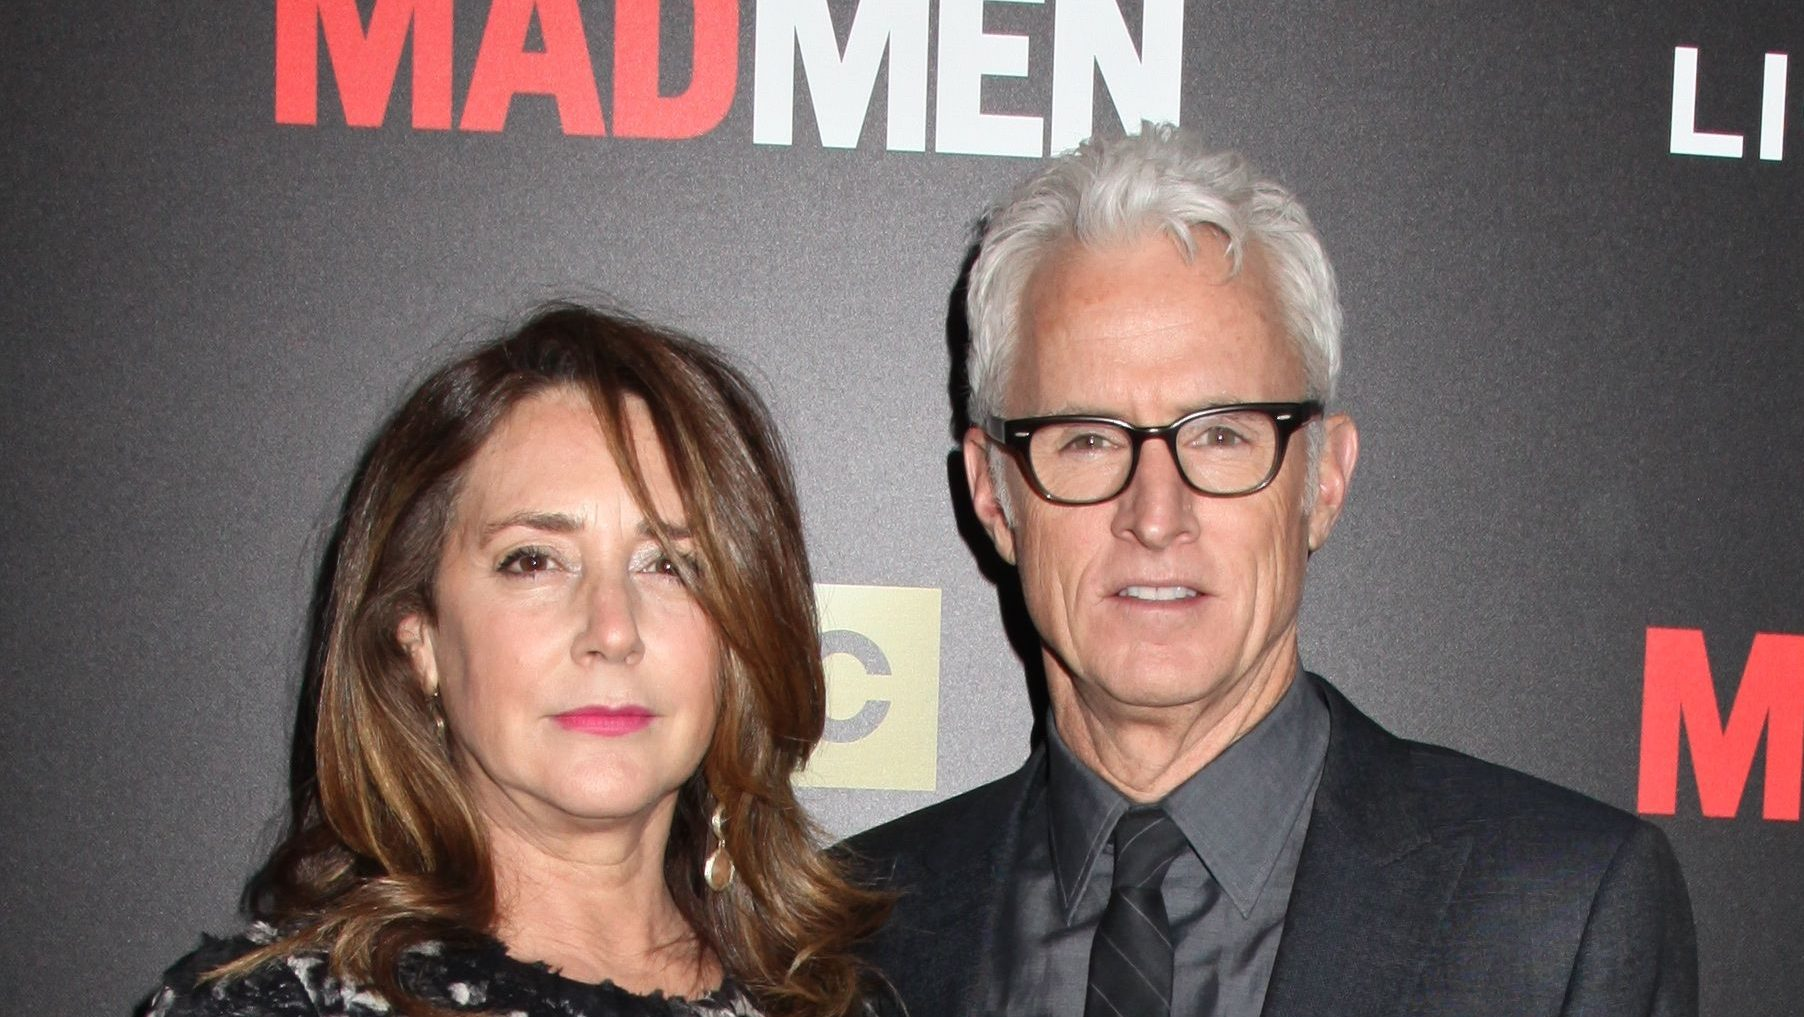 John Slattery 'Got Lucky' When Marrying Talia Balsam 20 Years Ago: 'I Found the Right Person'